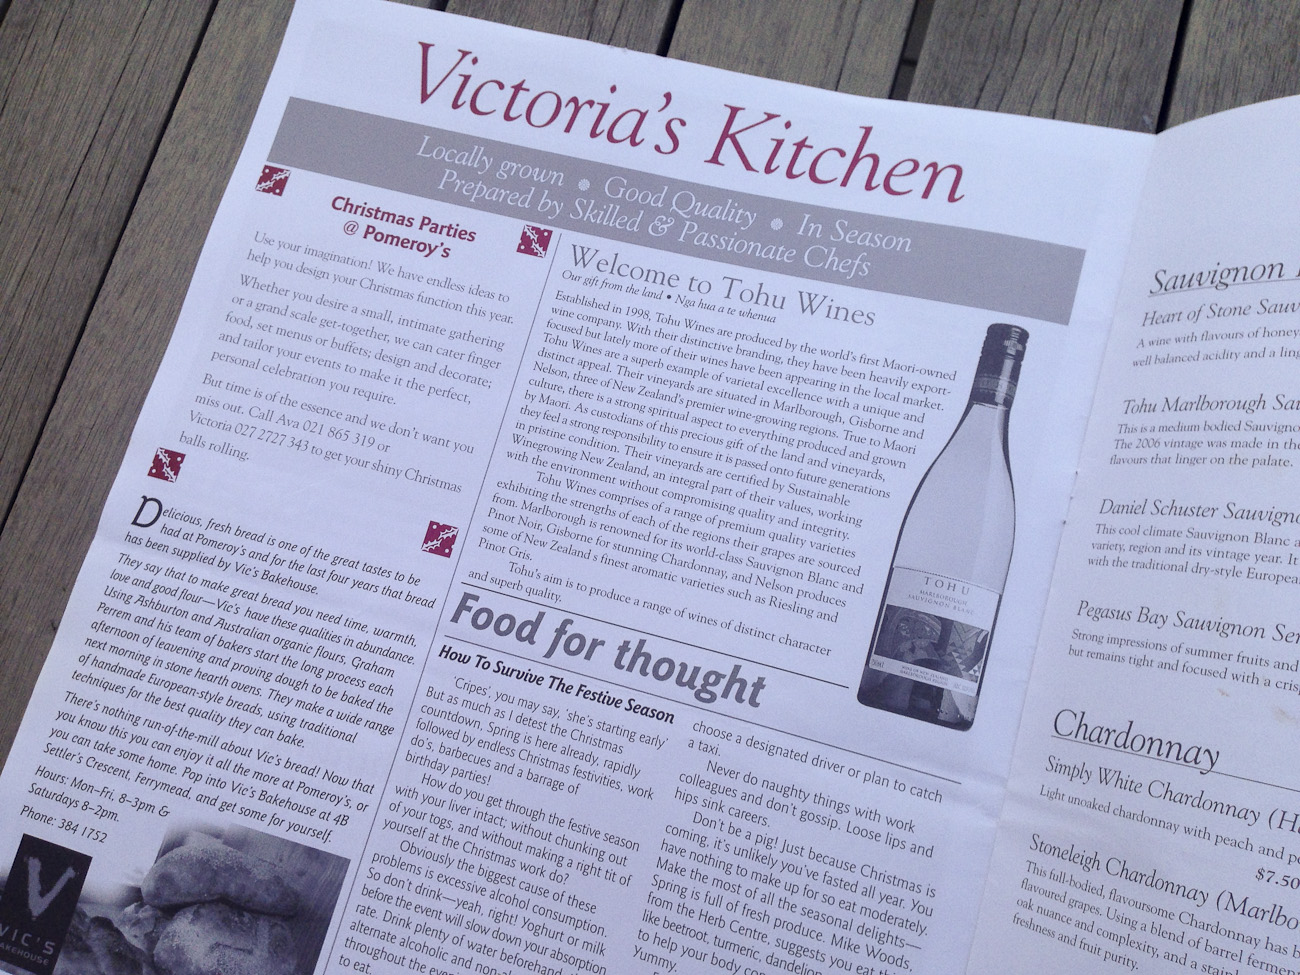 Pomeroy's Press newsletter, Victoria's Kitchen wine and food articles and promotions.